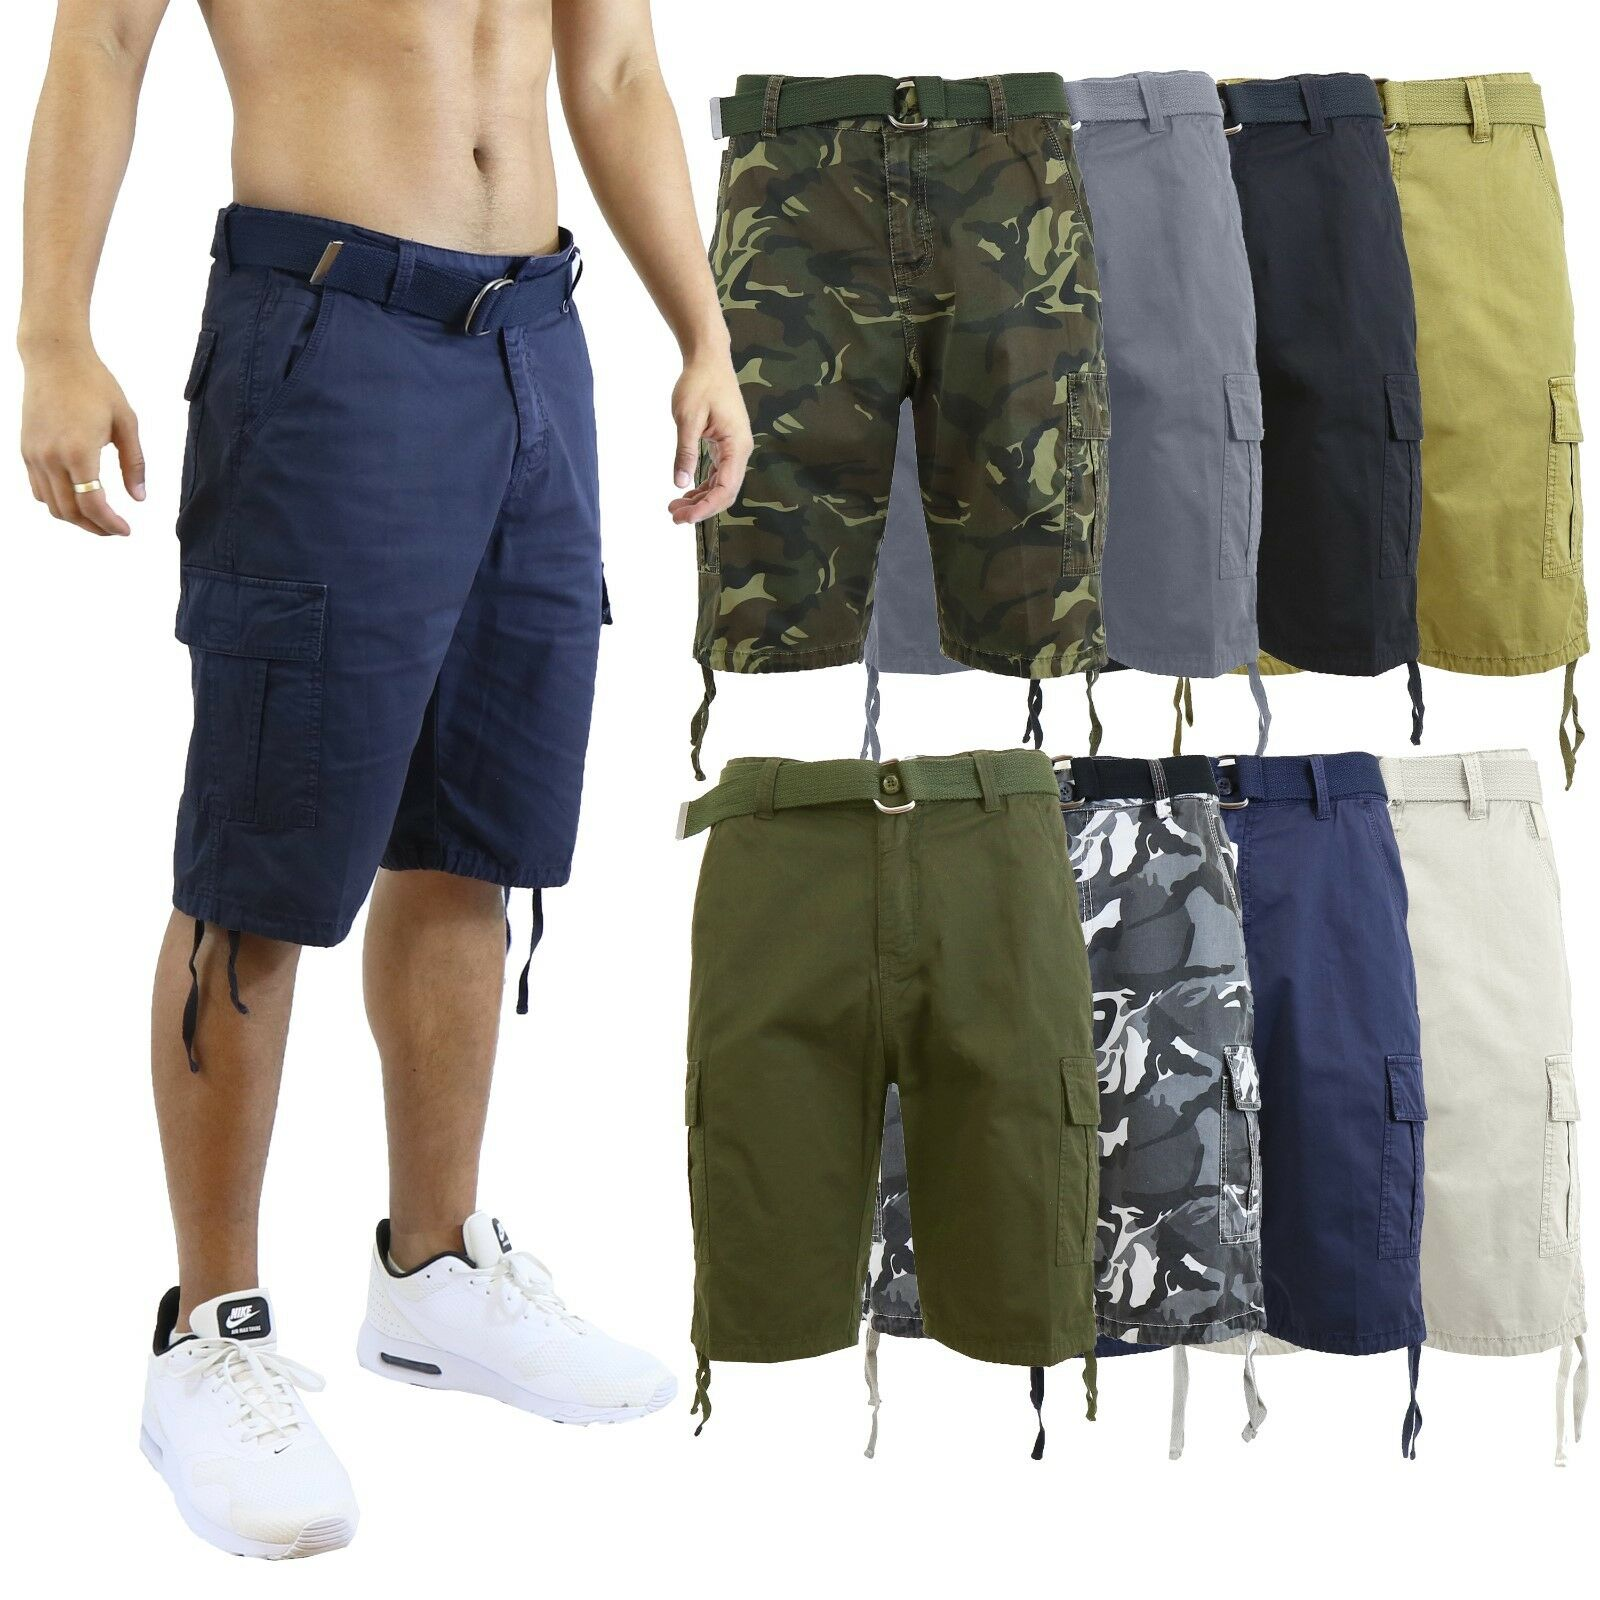 Mens Cargo Shorts Cotton Zip Button Belted Distressed Pockets Slim Fit Lounge Clothing, Shoes & Accessories